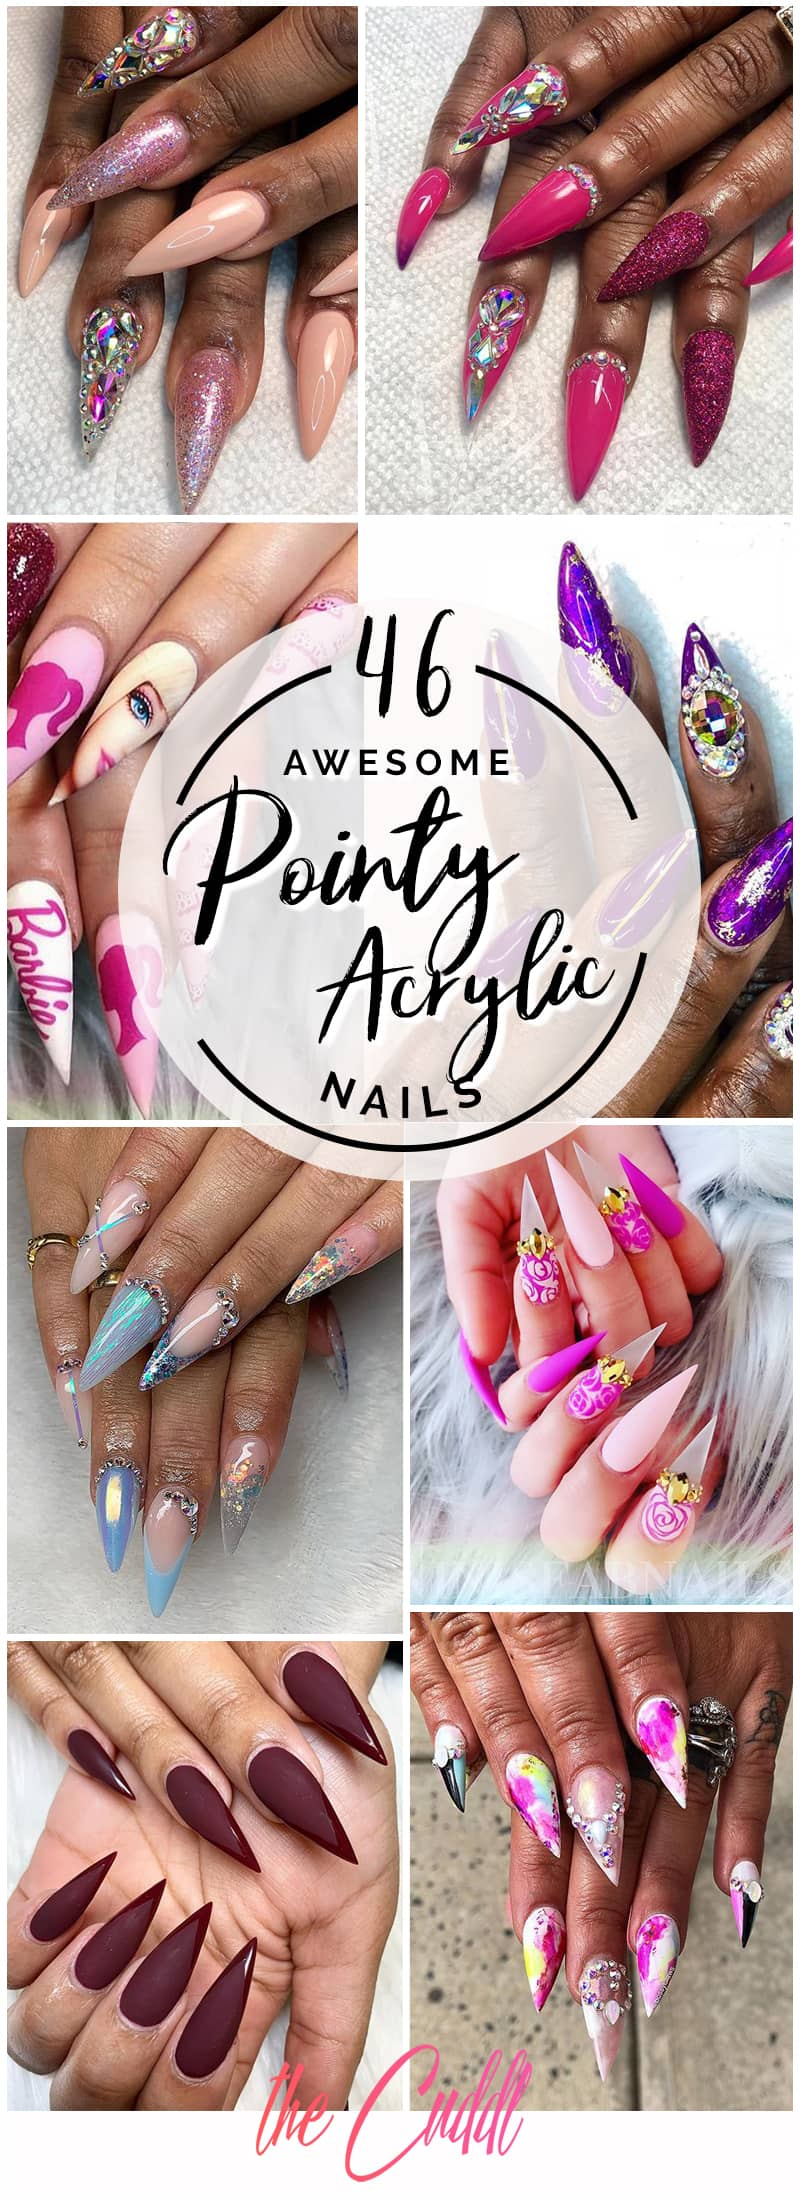 46 Cute Pointy Acrylic Nails that are Fun to Wear